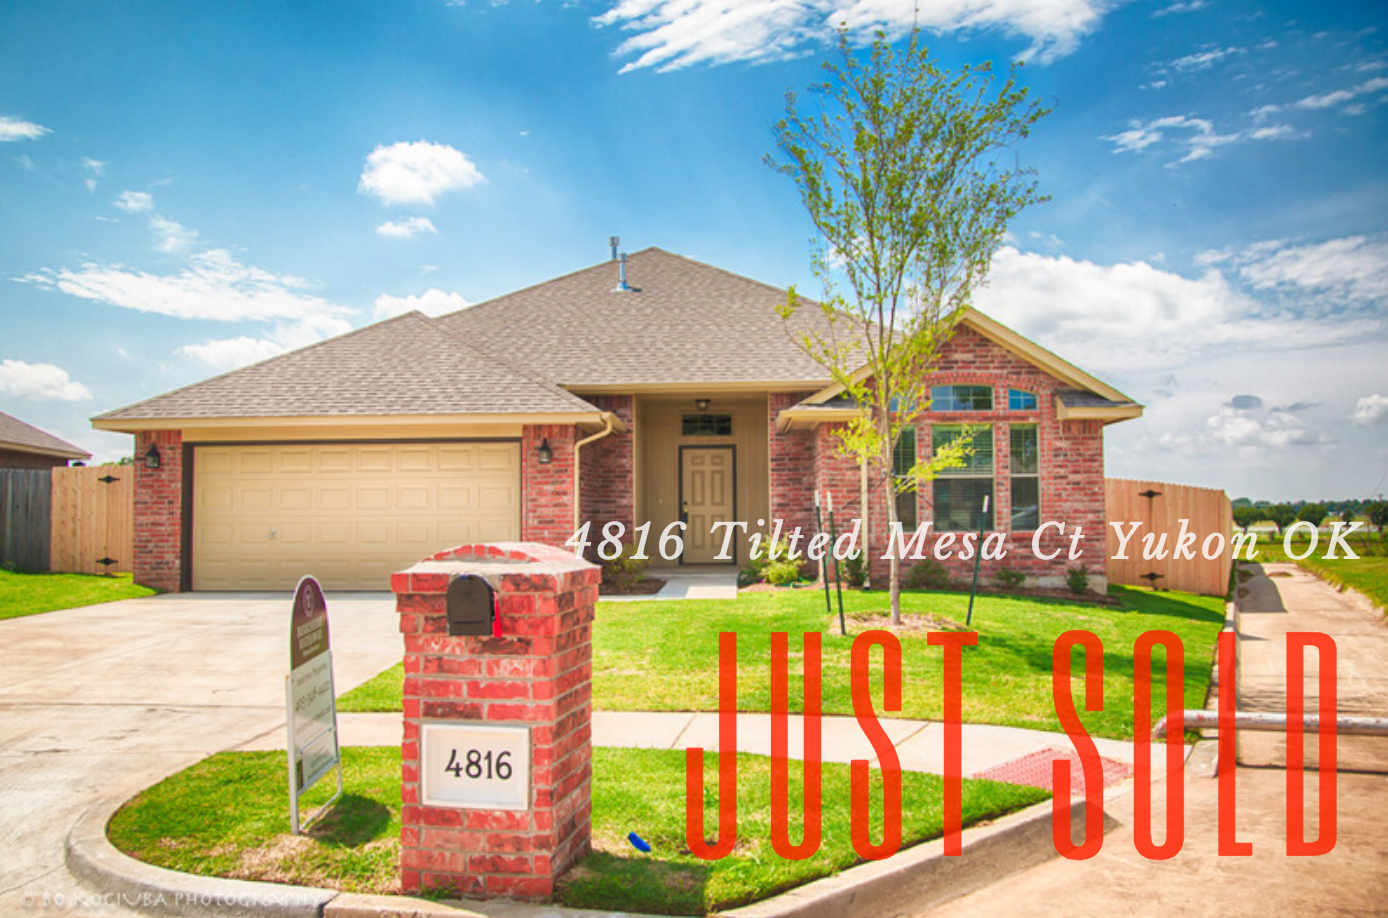 JUST SOLD-4816 Tilted Mesa Dr NEW HOME IN YUKON OK